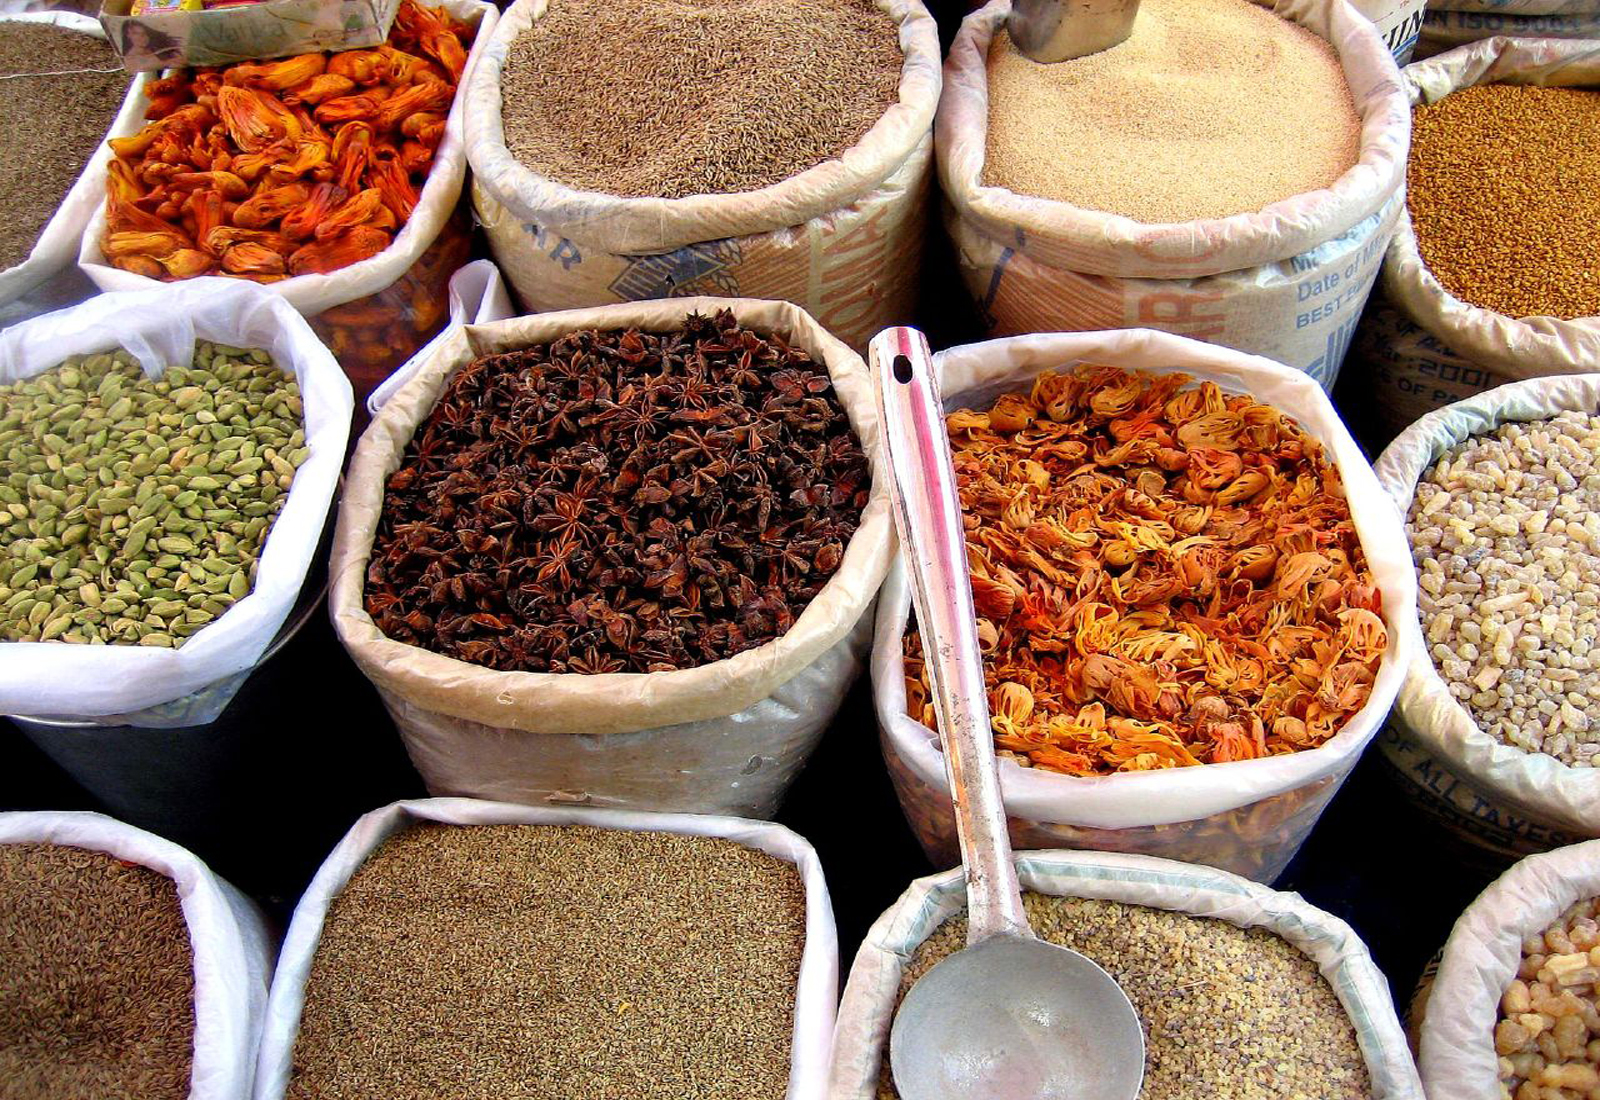 Taste Buds in a Rut? Try These 6 Ethiopian Spices And Flours